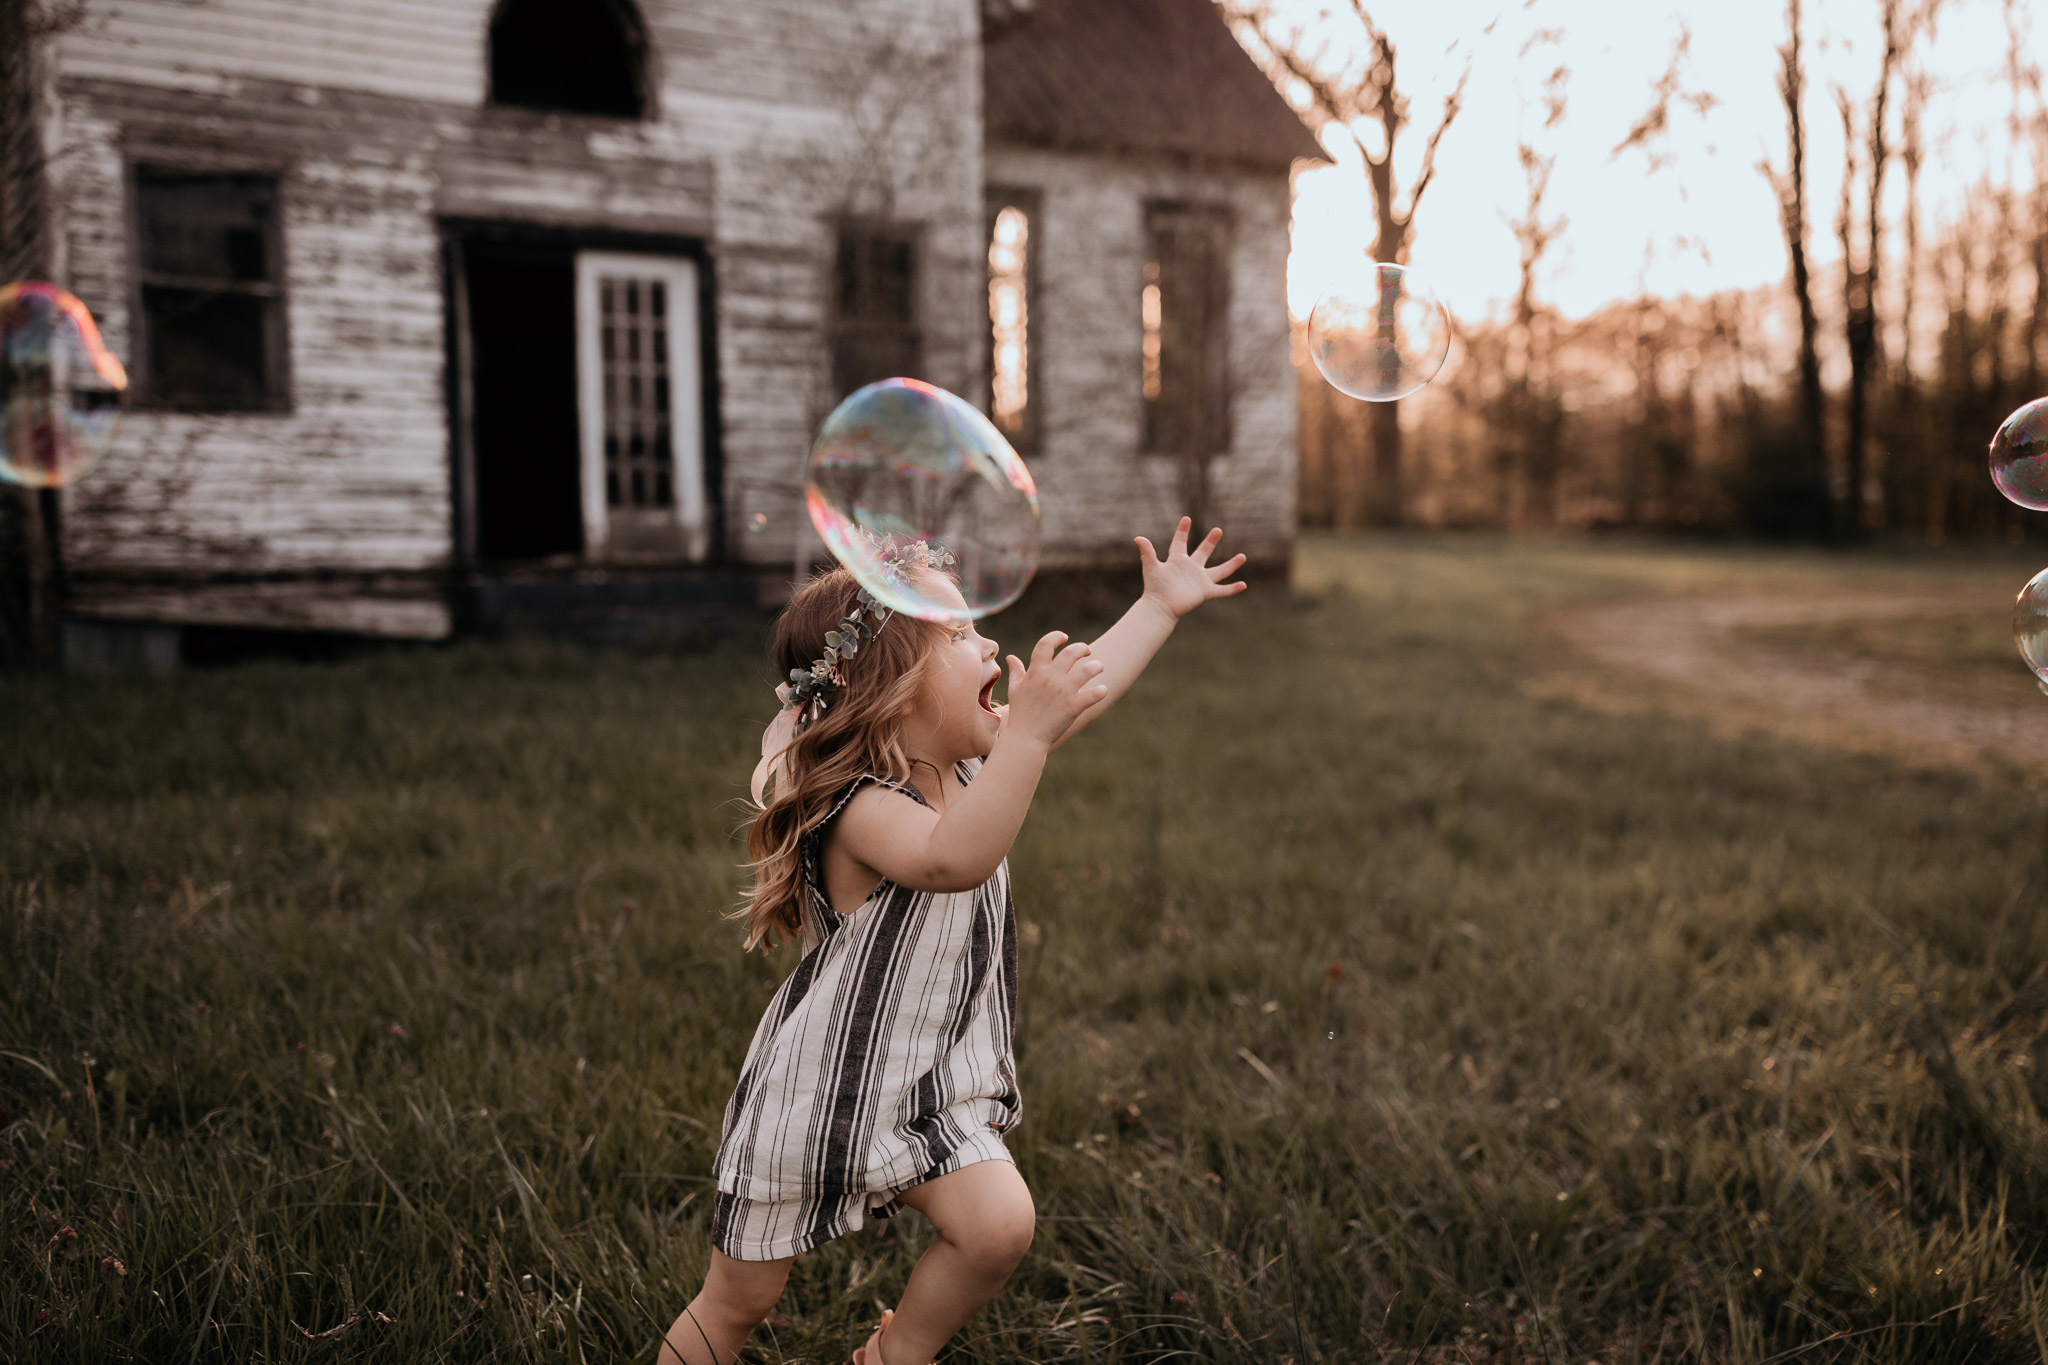 Young Girl Chasing Bubbles